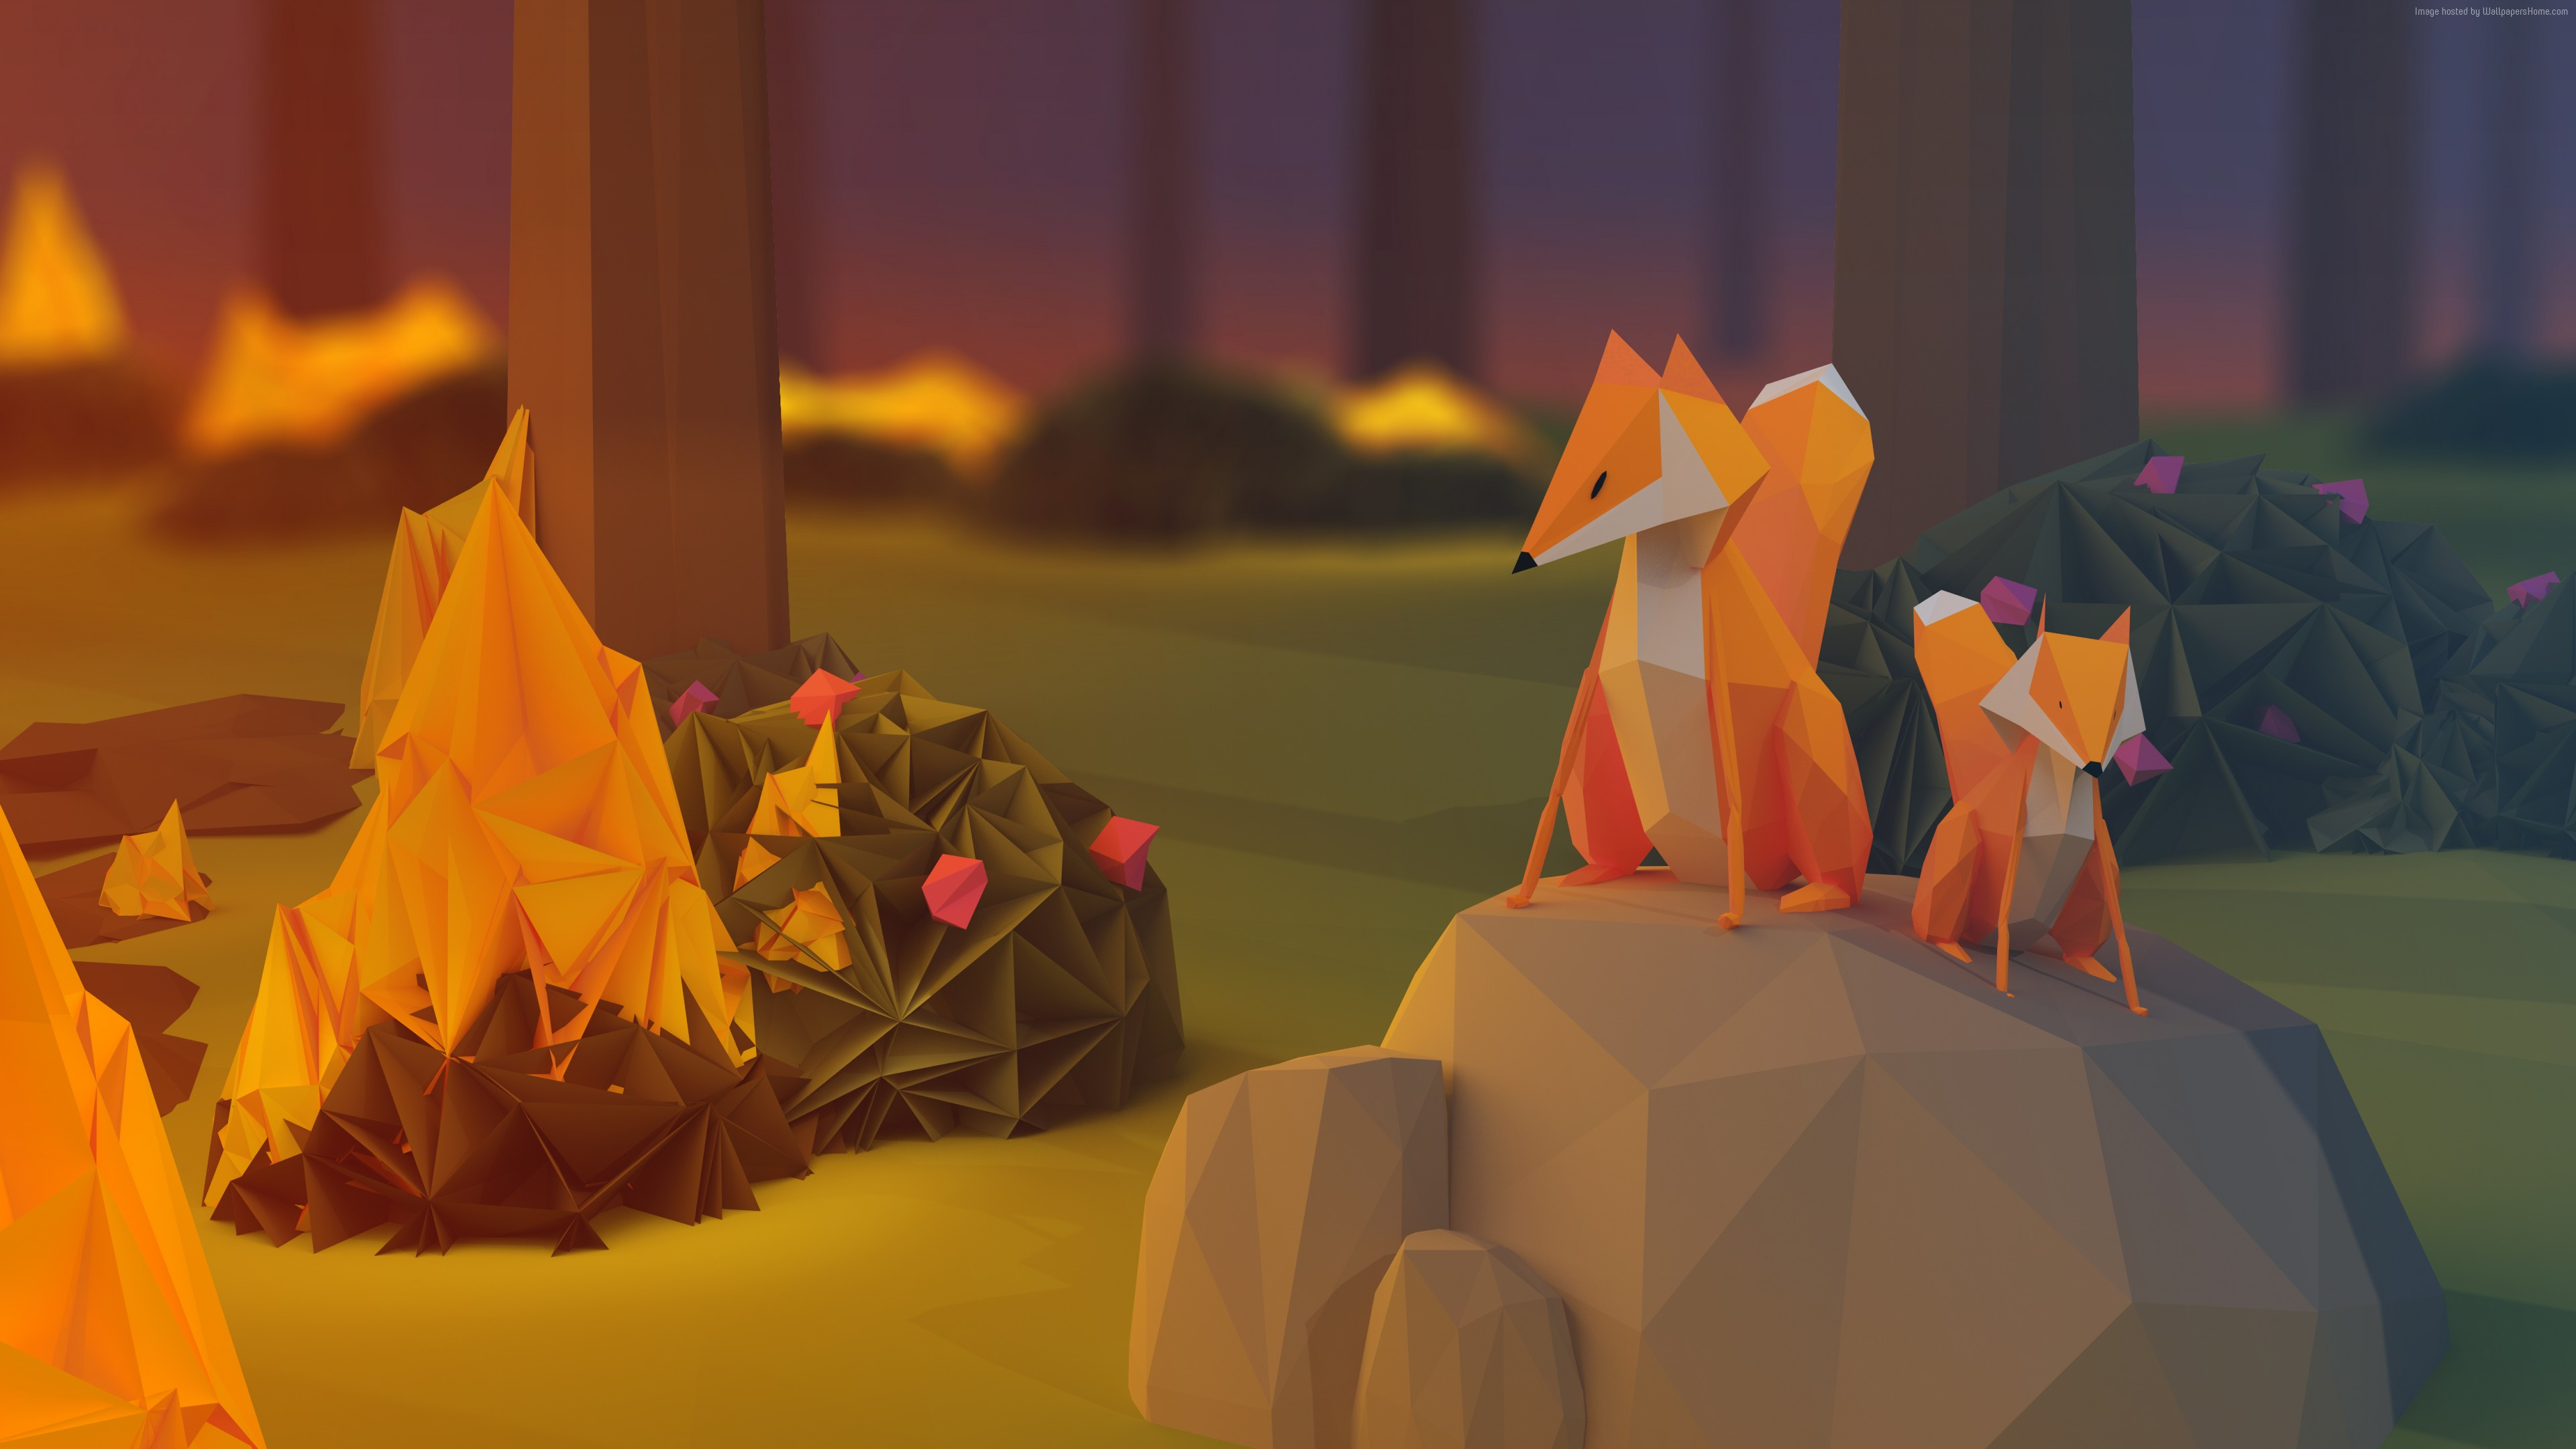 Wallpaper fox, low poly, 3d, forest, Abstract